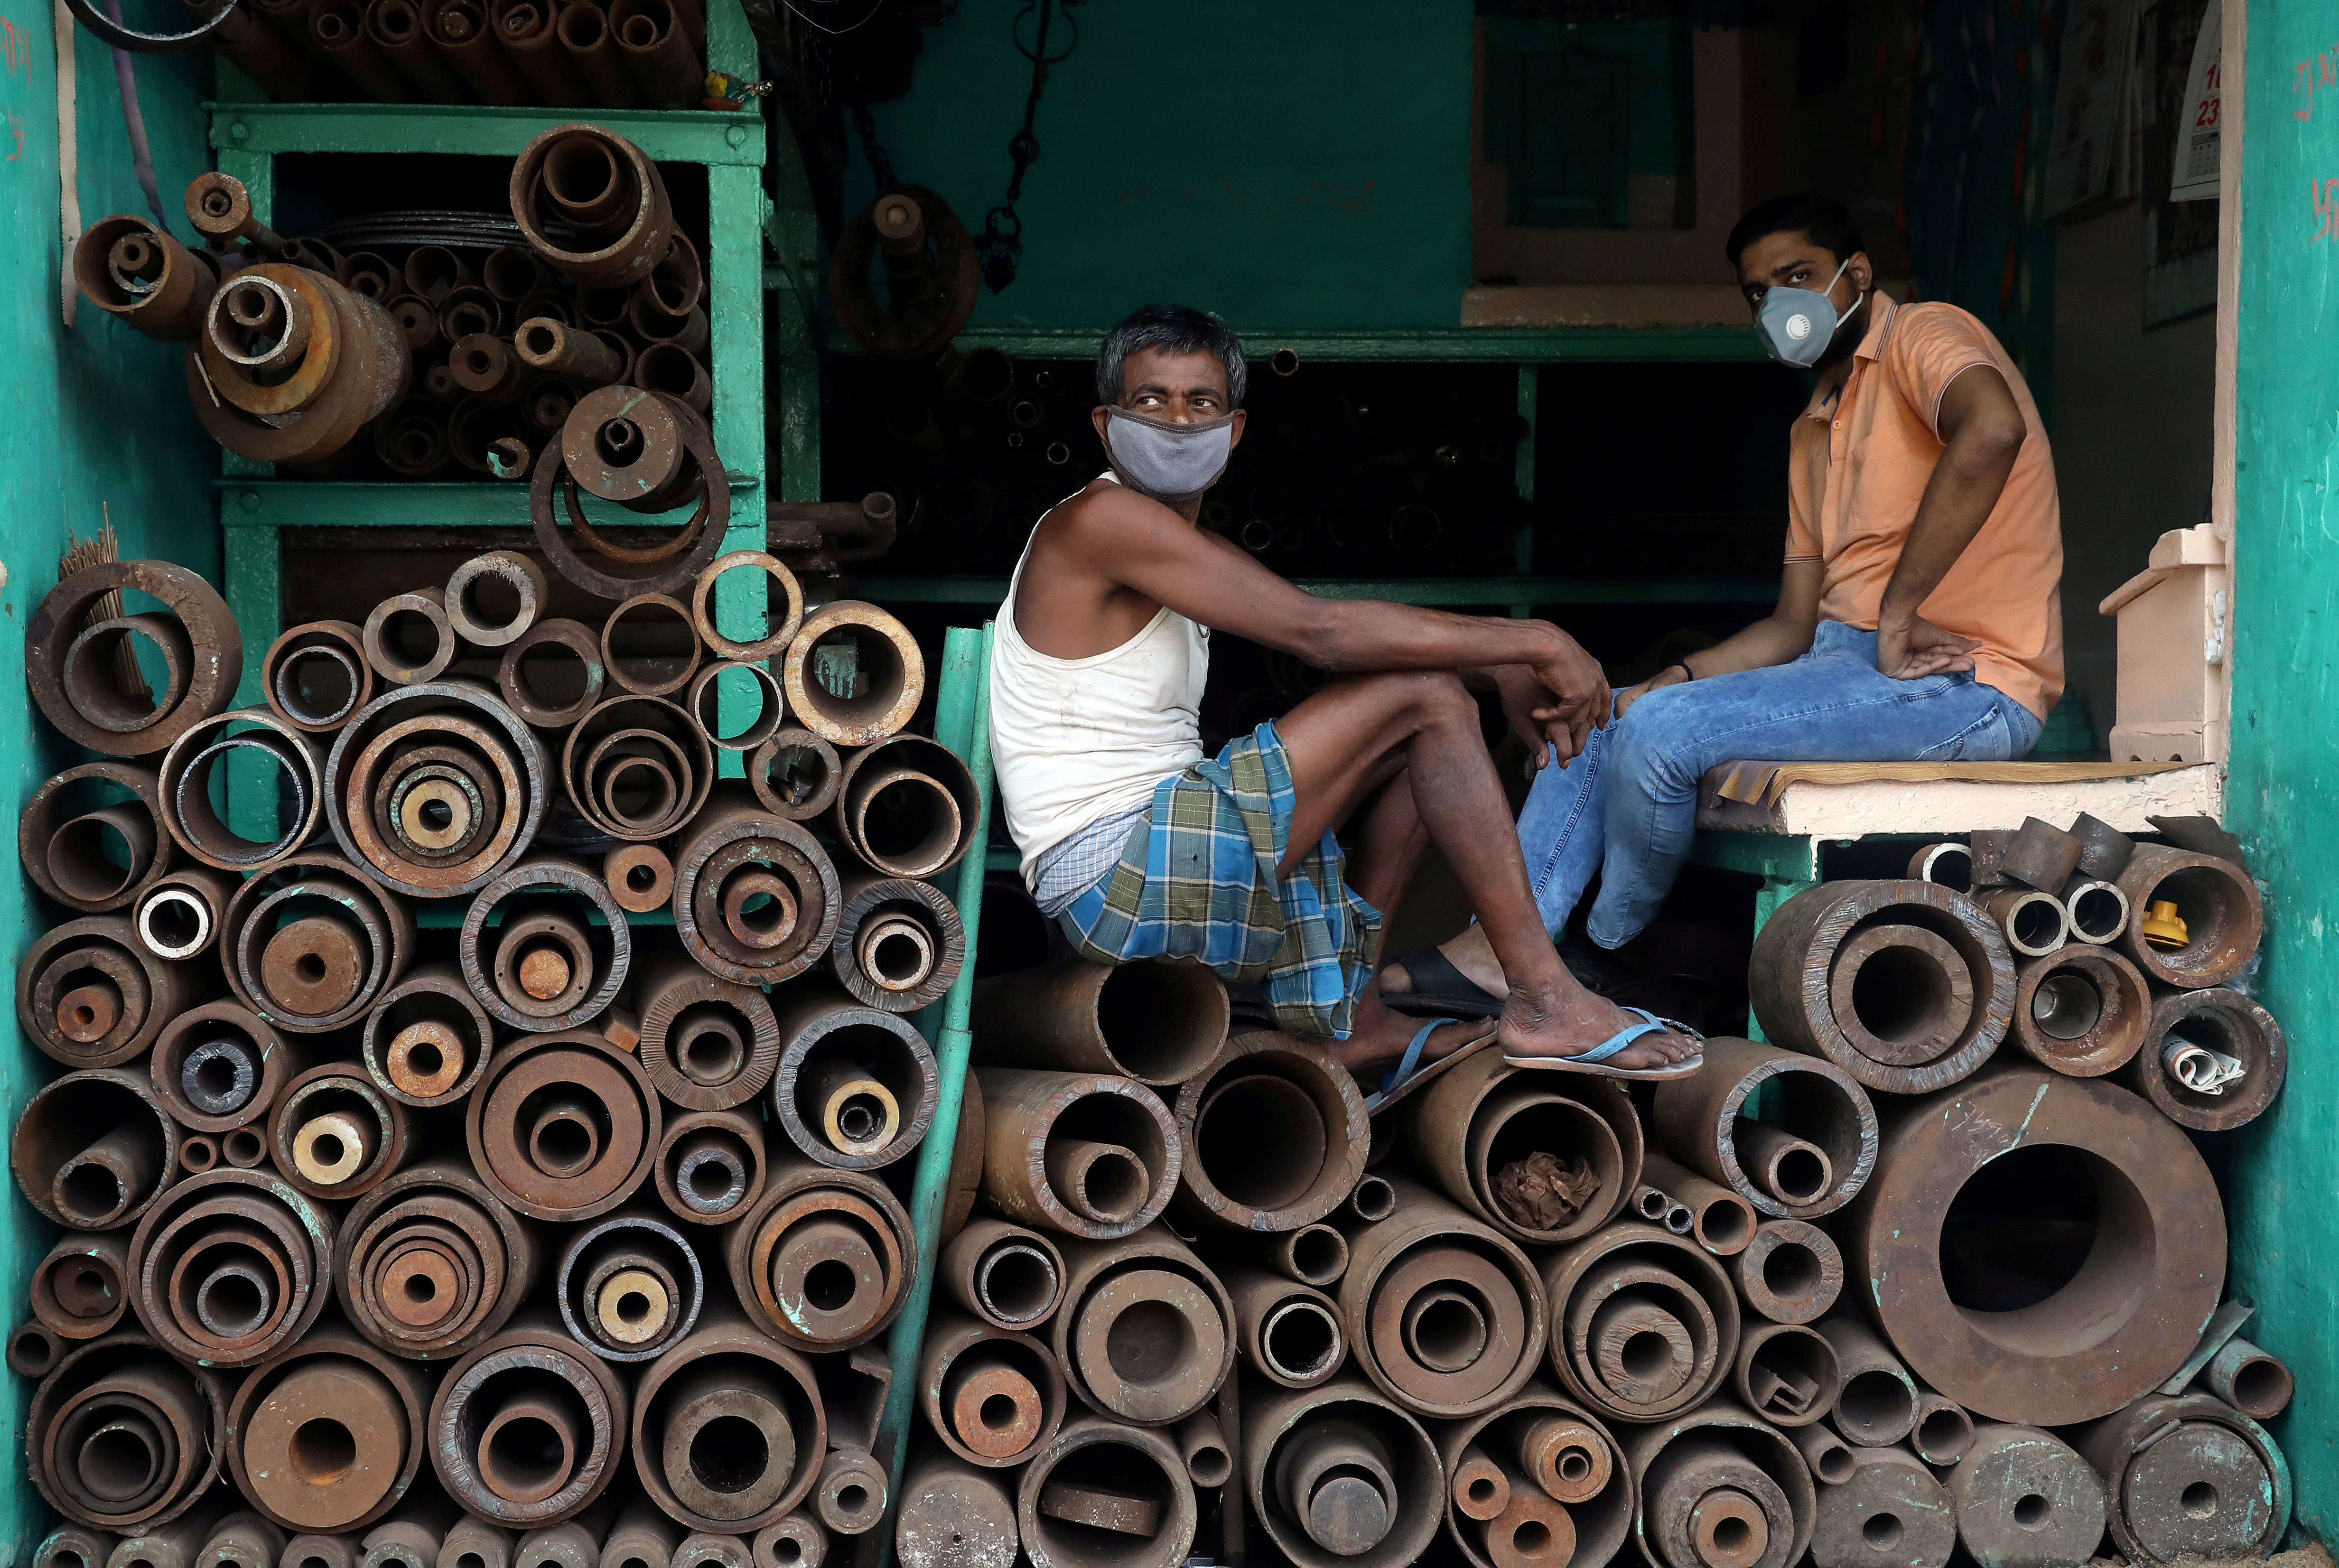 Workers wearing protective face masks sit inside a shop selling iron pipes at a wholesale iron market, after authorities eased lockdown restrictions that were imposed to slow the spread of the coronavirus disease (COVID-19), in Kolkata, India, June 15, 2020. REUTERS/Rupak De Chowdhuri     TPX IMAGES OF THE DAY - RC2O9H9GTJAR